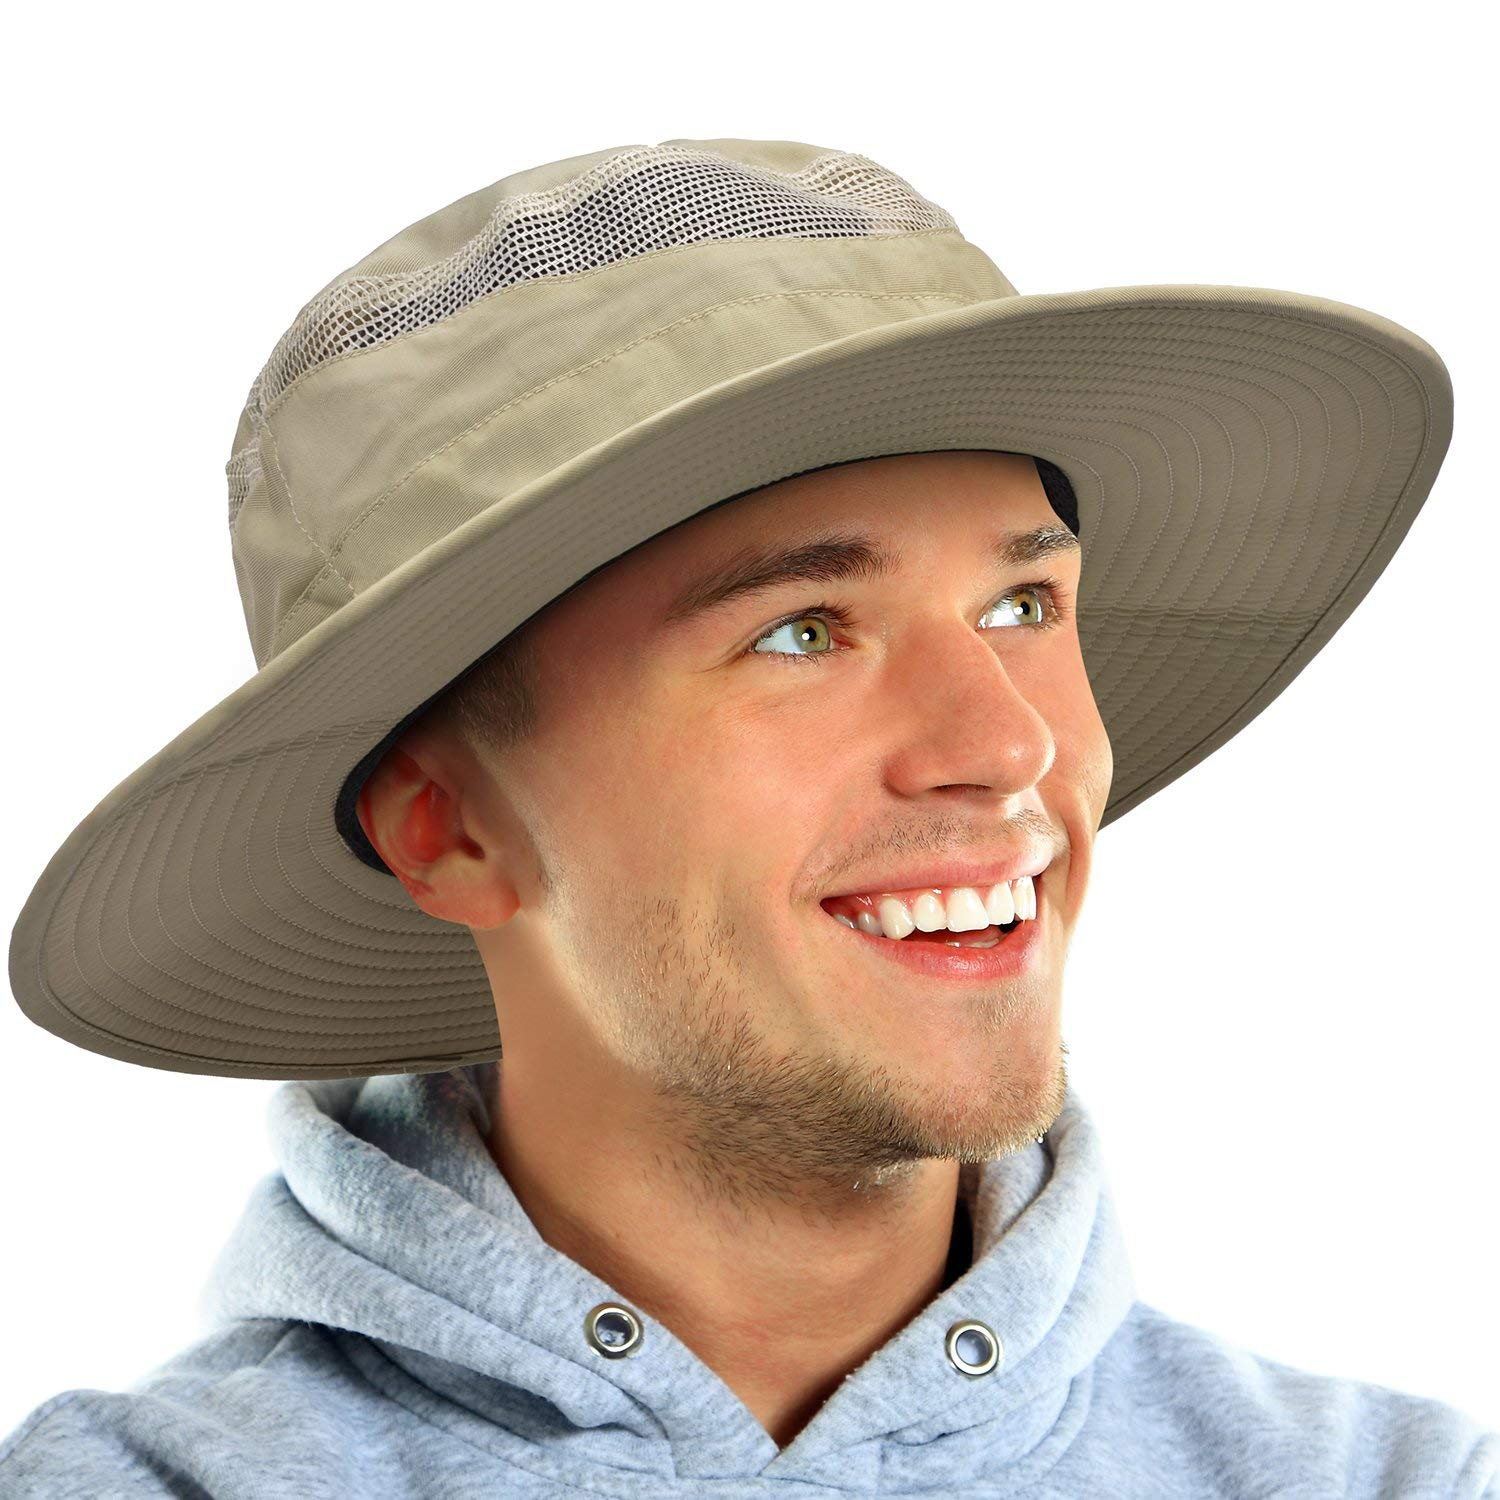 55ad6ab44fa Get Quotations · Safari Hat for Men Wide Brim Fishing Hat Boonie Cap Water  Repel for Boating Hiking Beach